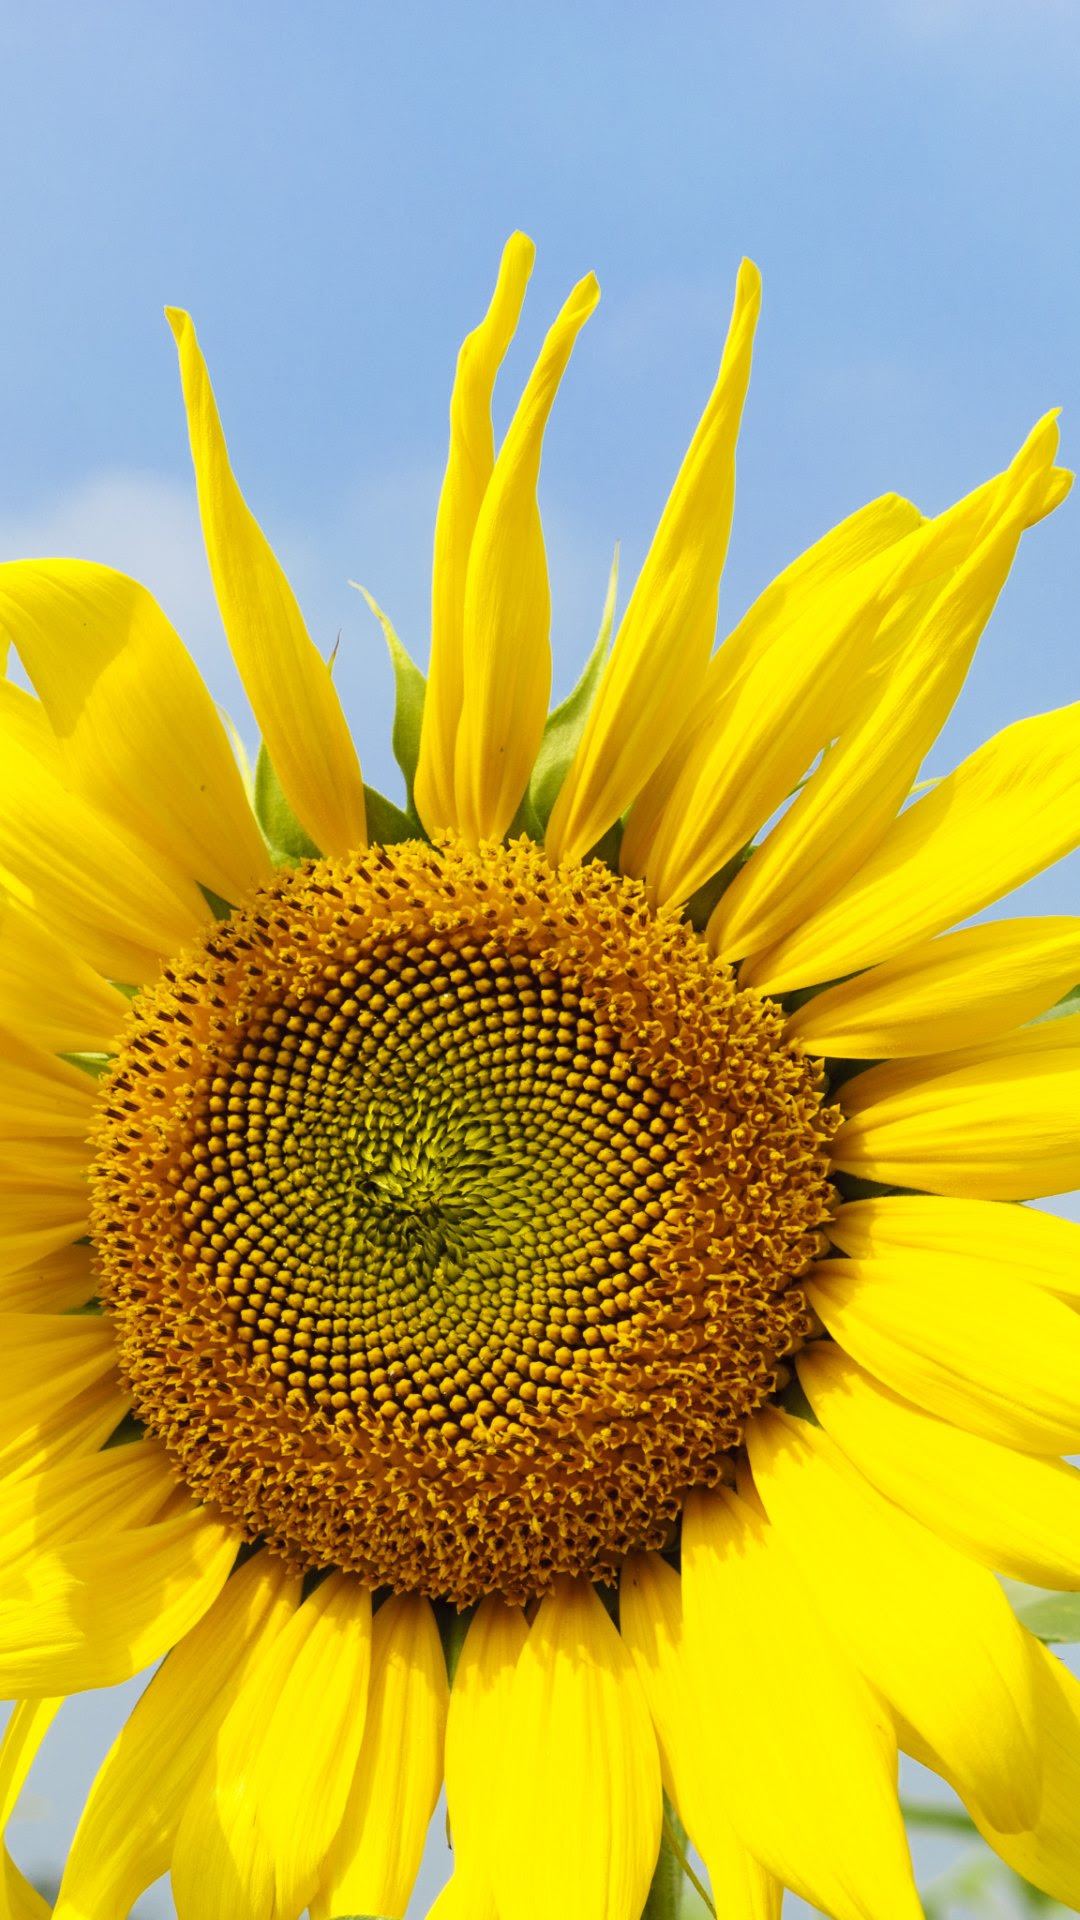 4K Sunflowers Wallpapers High Quality   Download Free